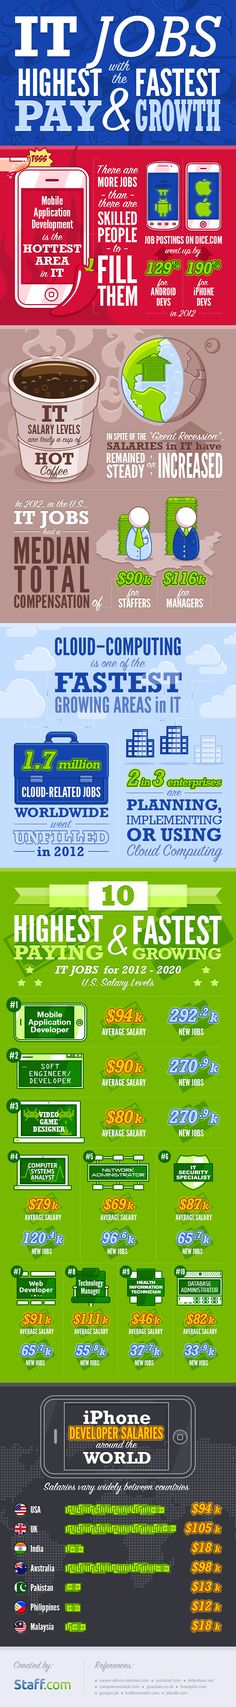 The Best Paid and Fastest Growing IT Jobs